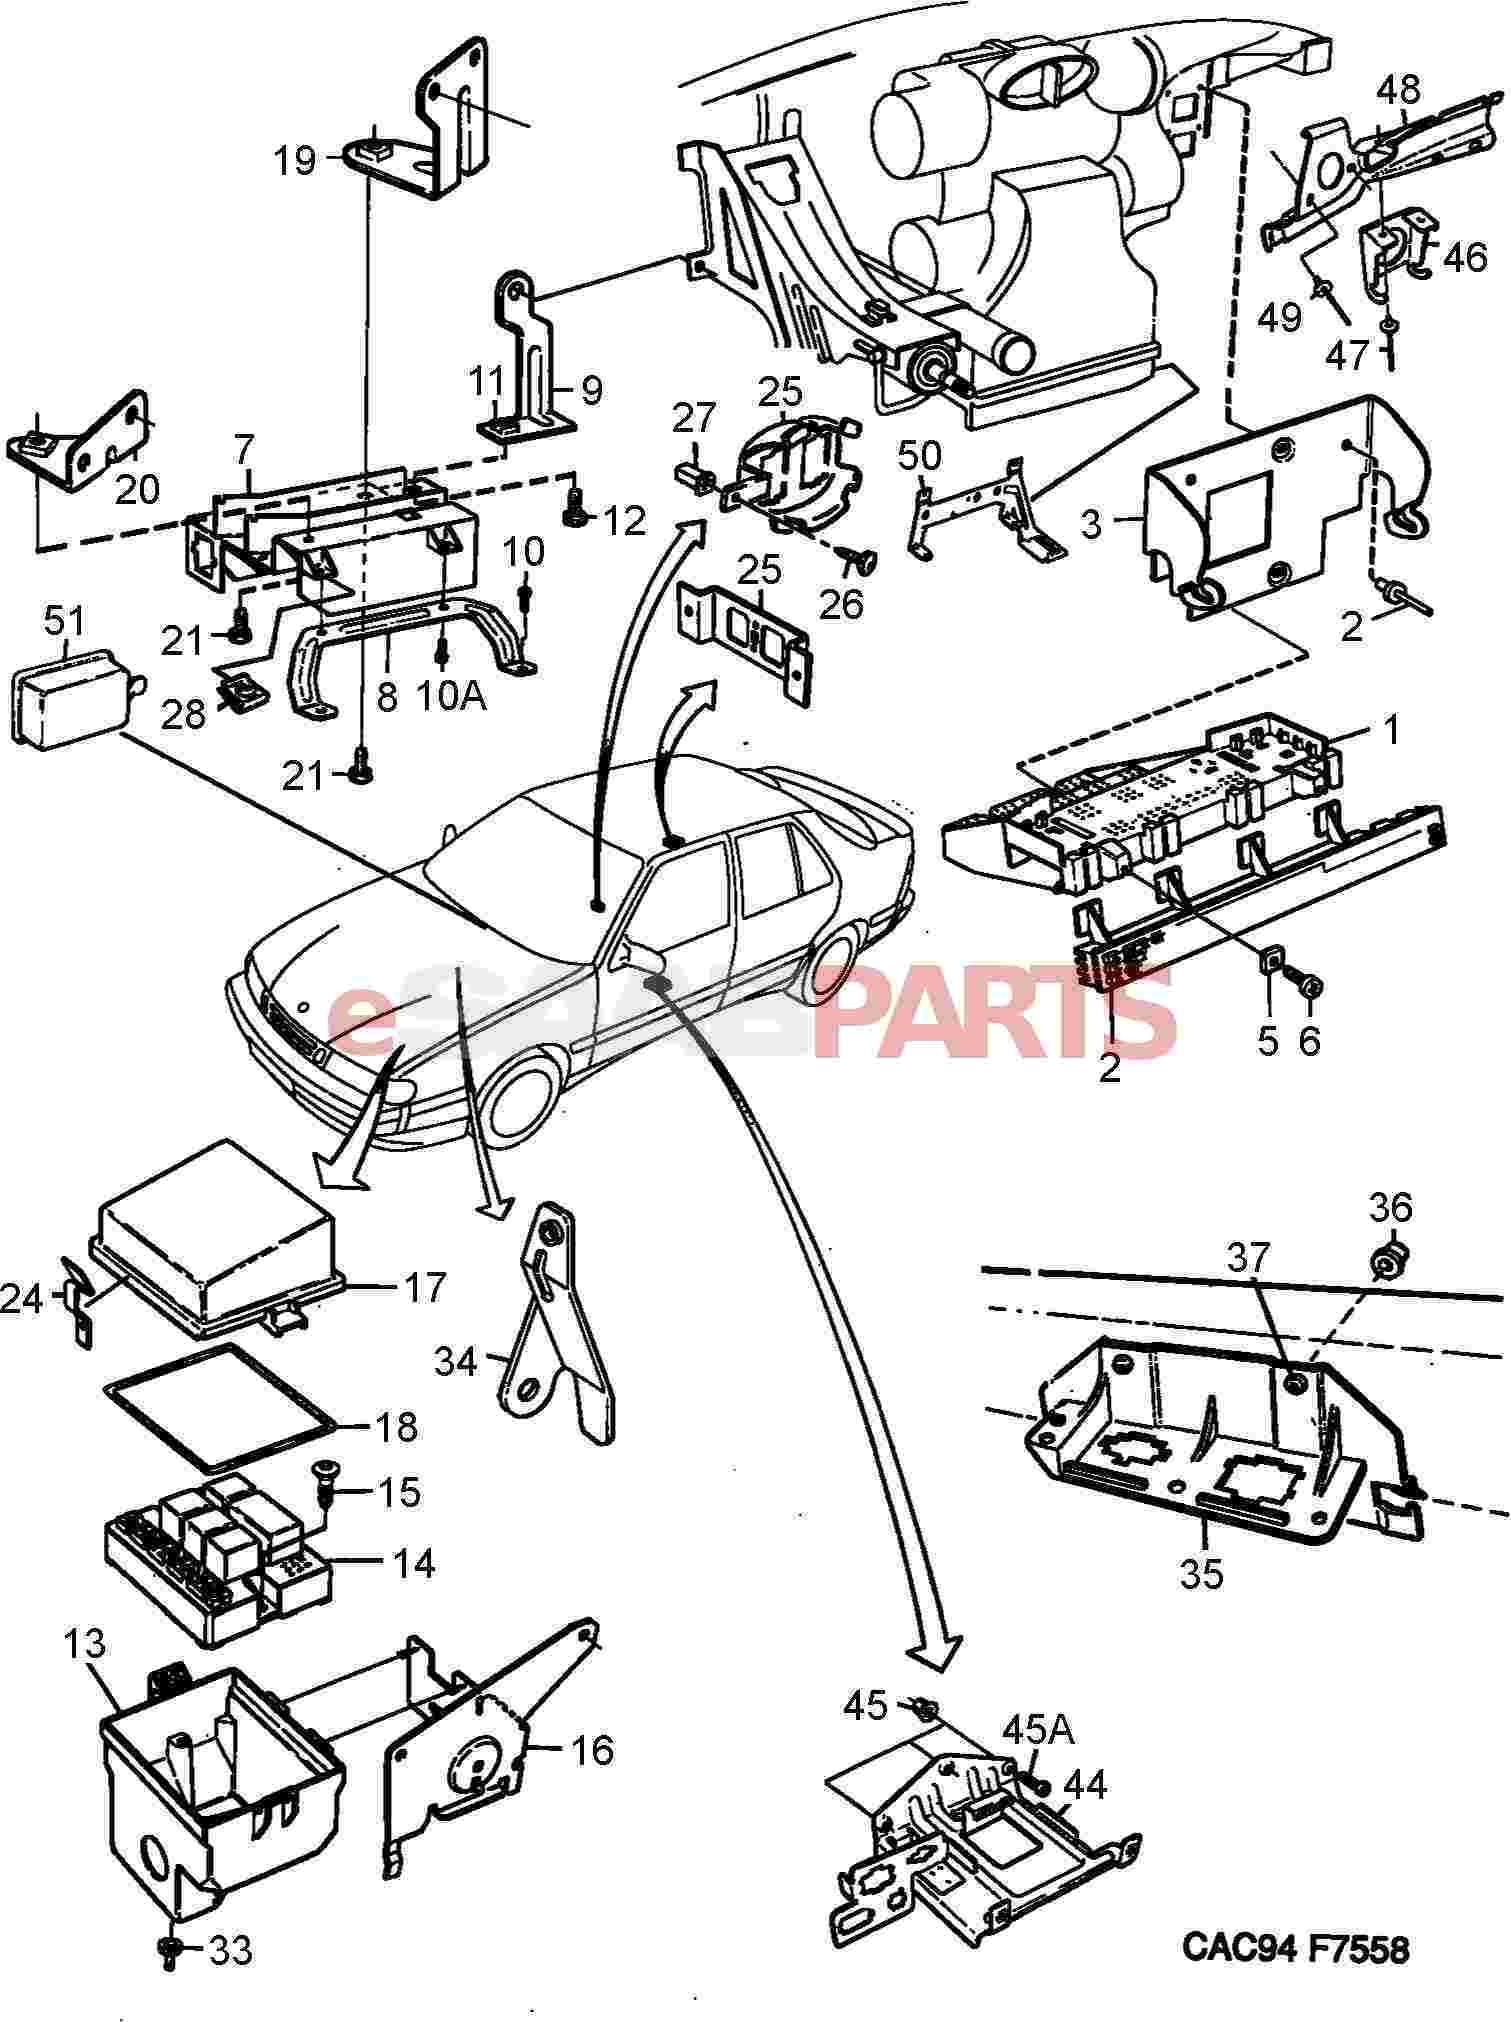 1994 Saab 9000 Wiring Diagrams Saab 9-3 Engine Diagram